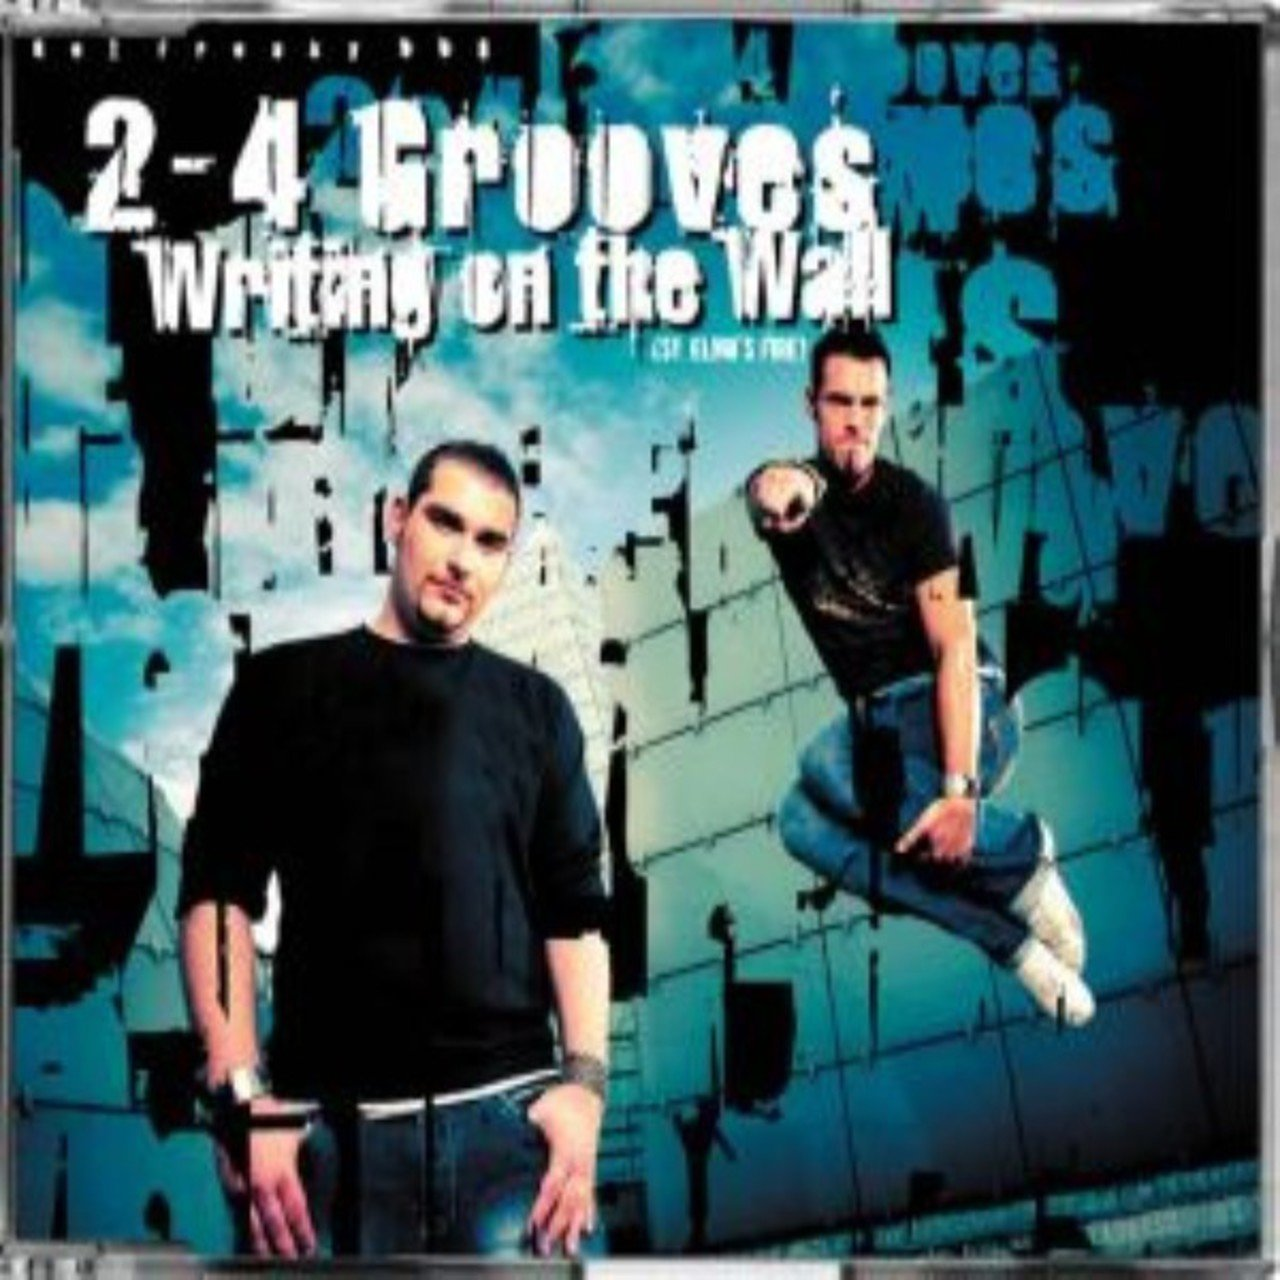 Writing on the wall (st. Elmo's fire) (2-4 grooves club mix) von 2.